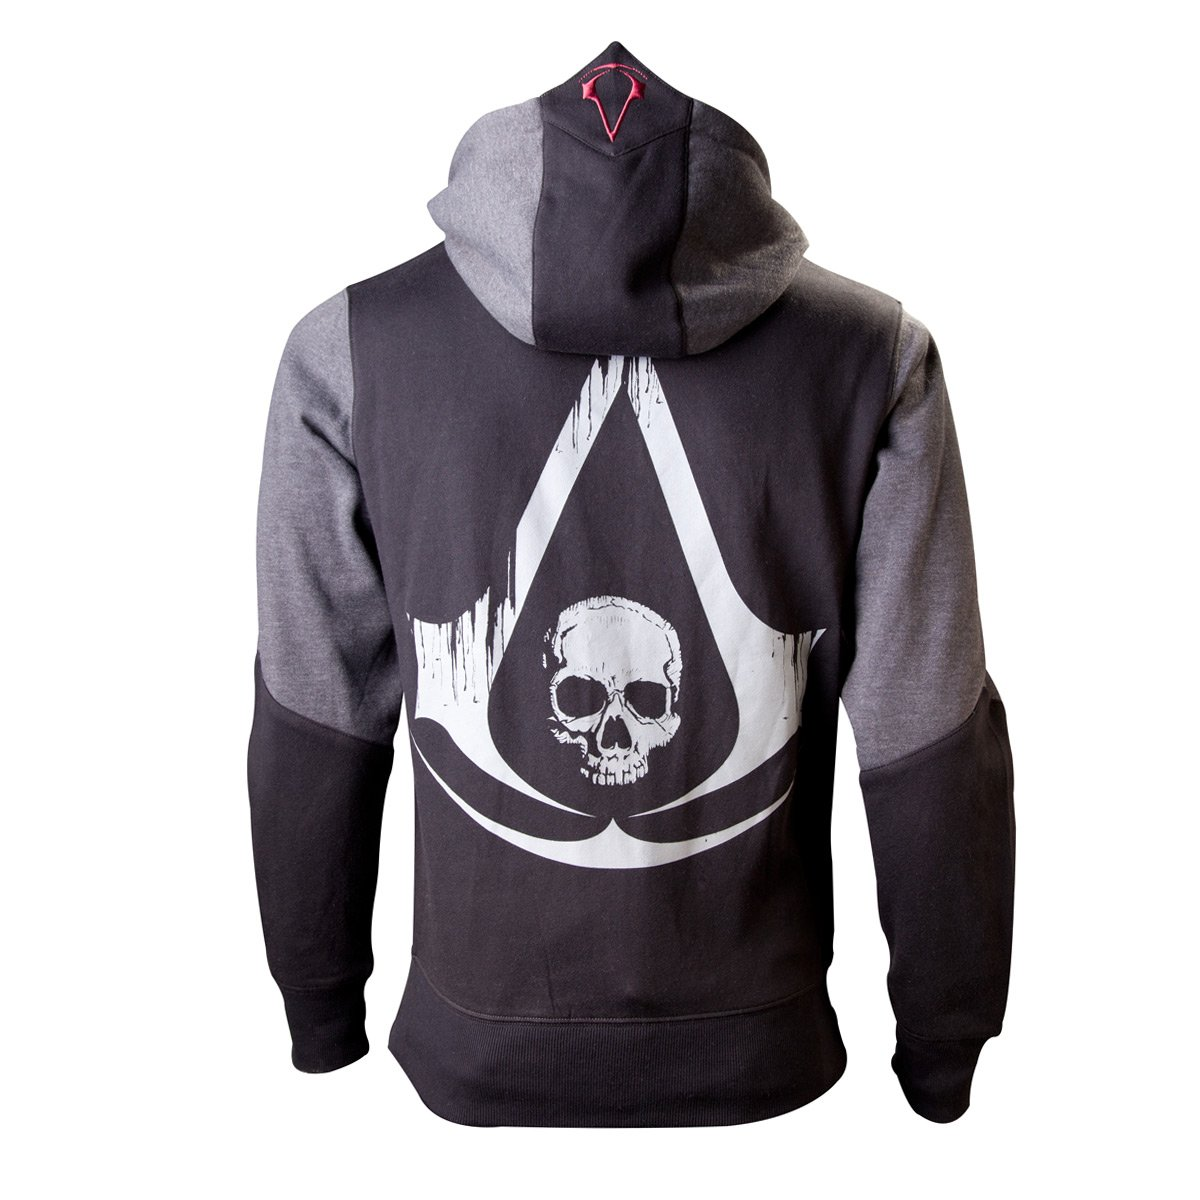 TALLA XL. Import Europe, Sudadera Assassin's Creed